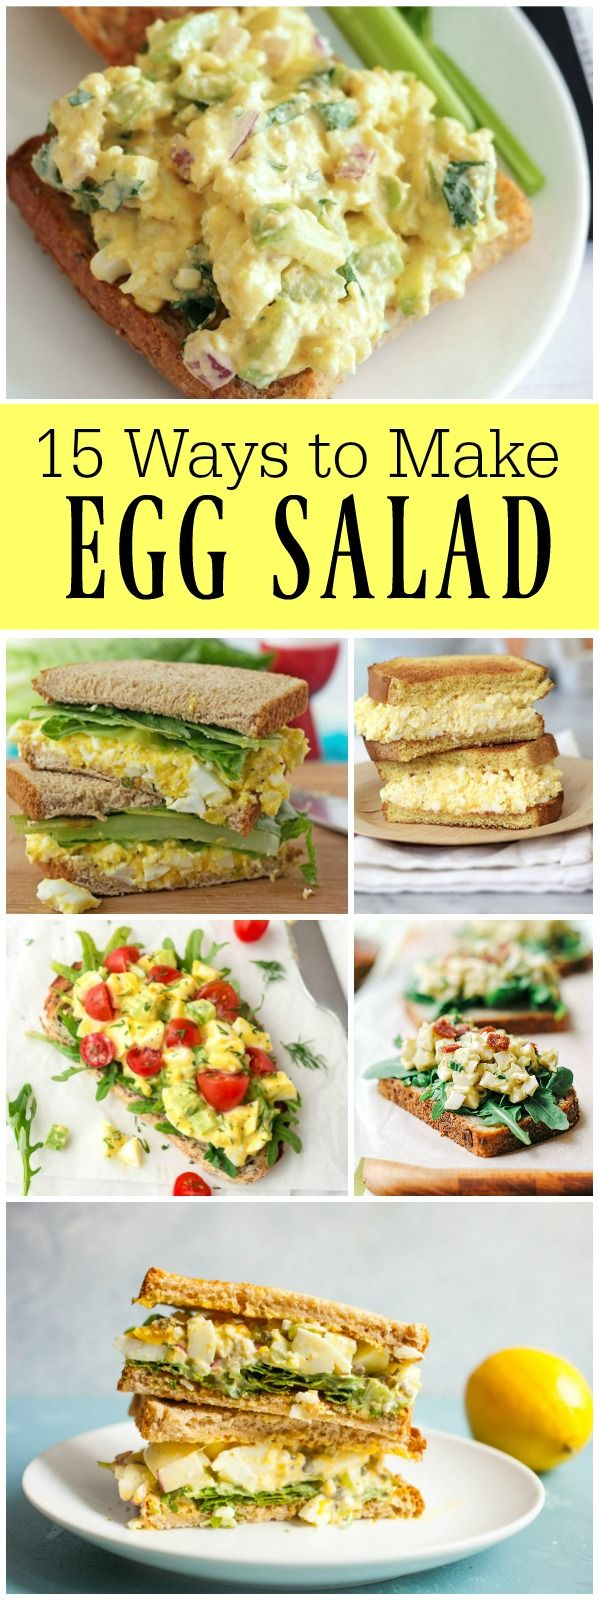 15 Ways to Make Egg Salad : Classic Egg Salad Sandwiches, Curry Egg Salad Sandwiches, Tuna Egg Salad, Avocado Egg Salad and more!  Lots of Egg Salad Sandwich recipes!